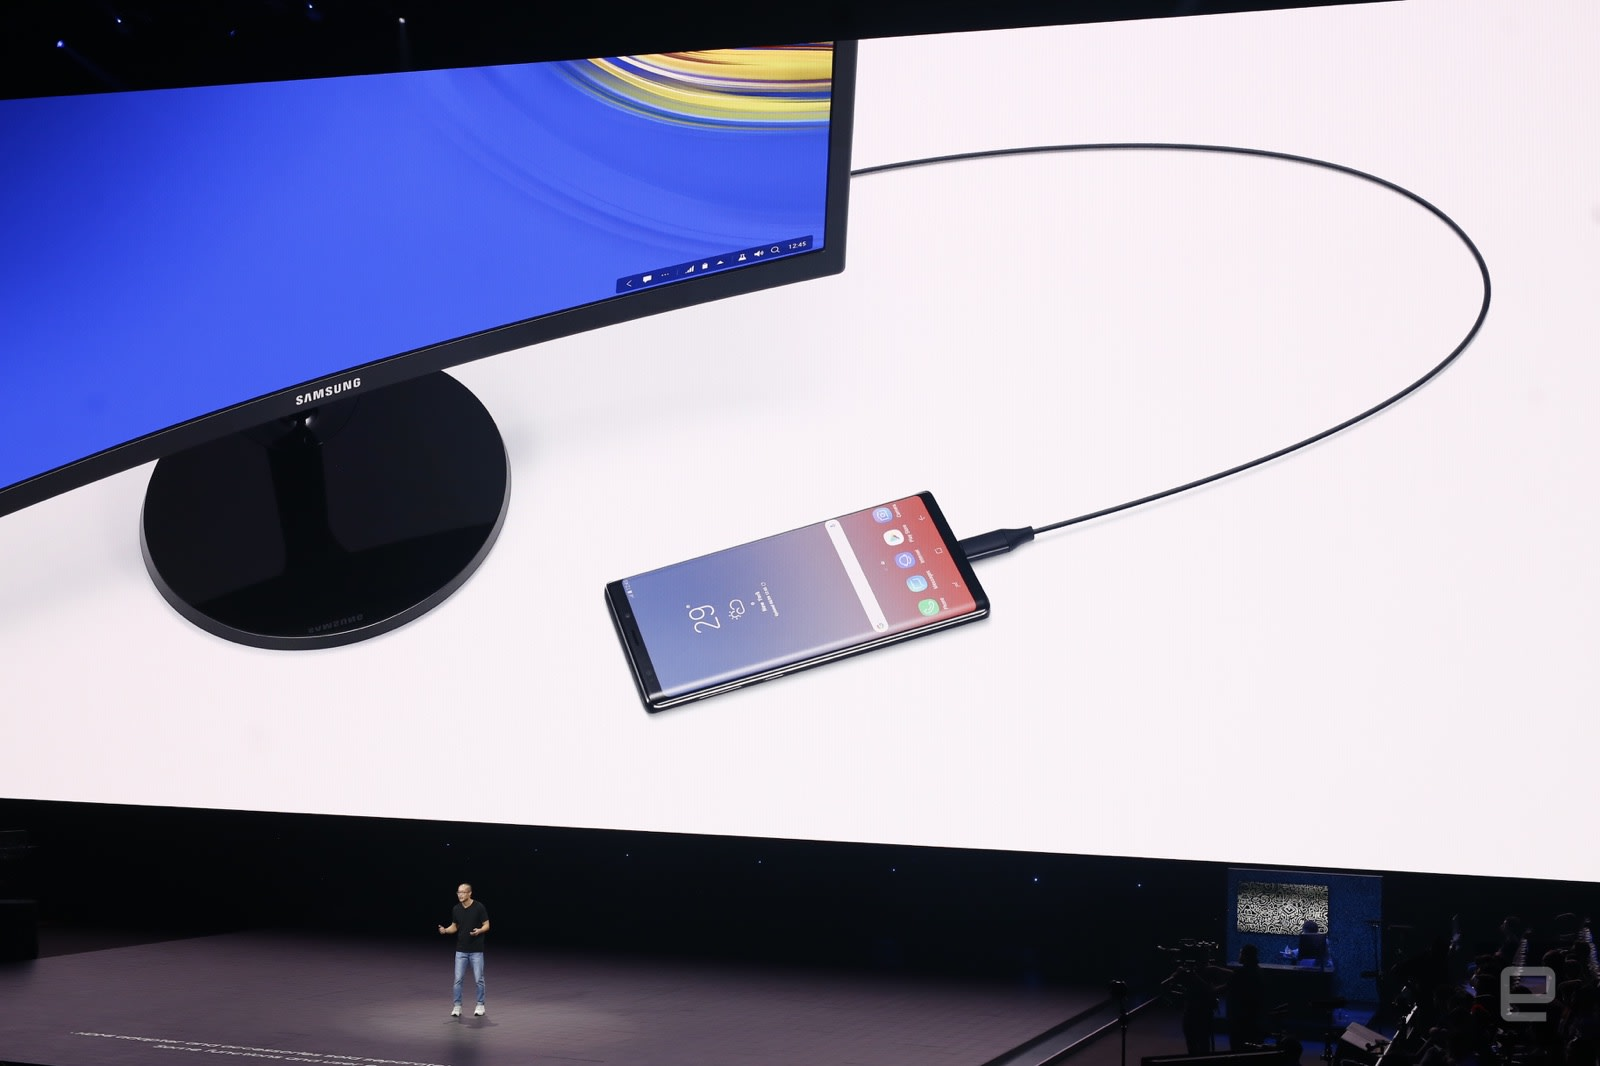 Samsung is still trying to make DeX happen